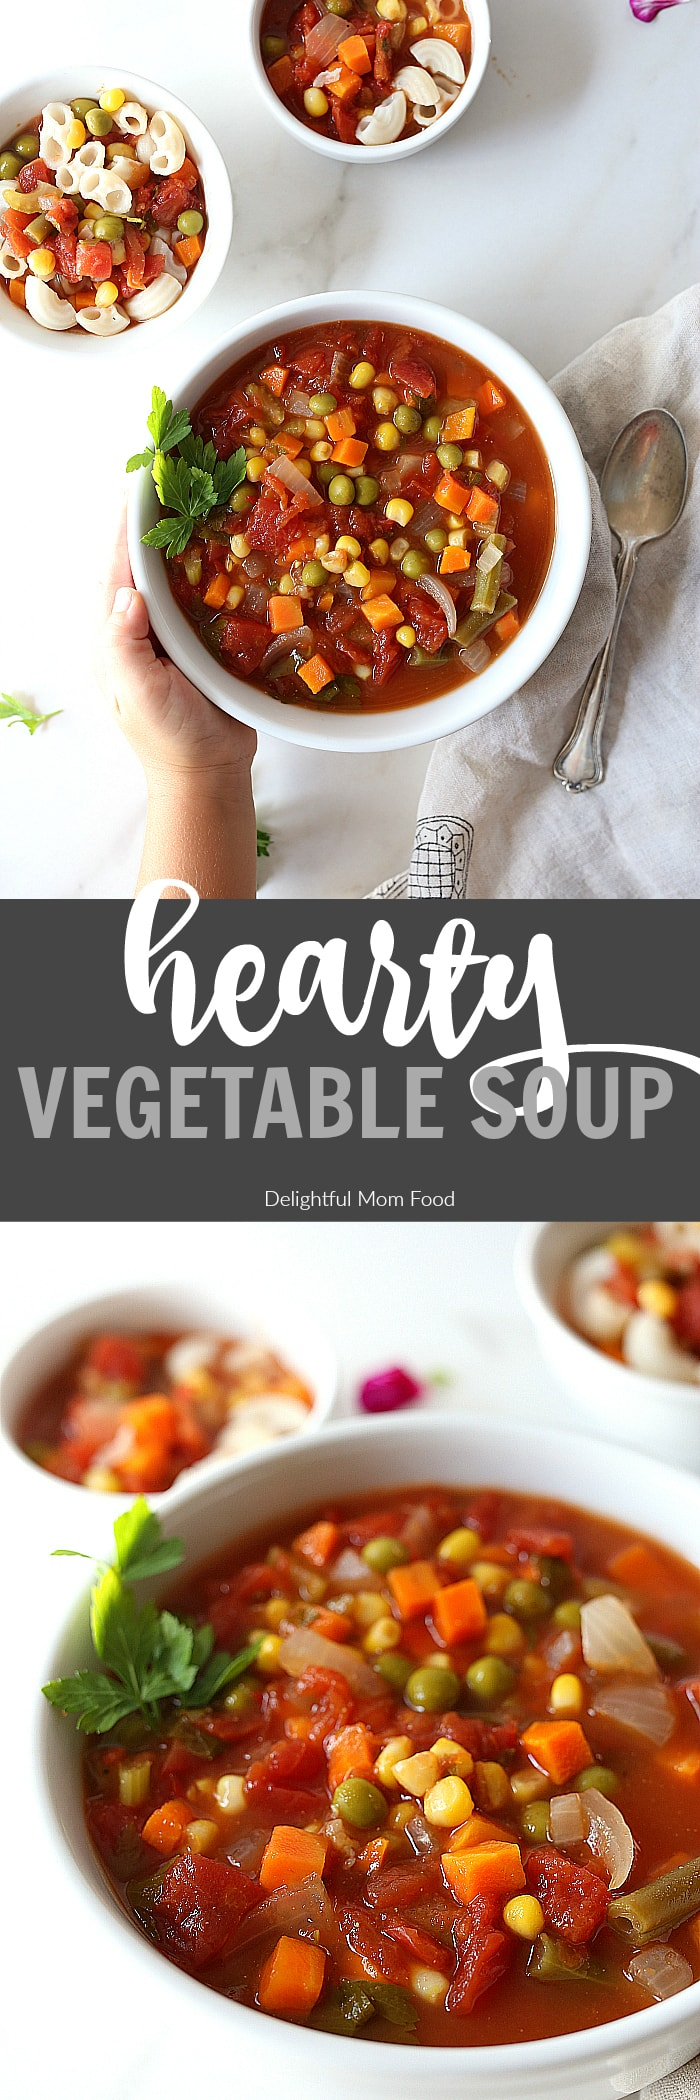 Vegetable soup is healthy and ready in less than 30 minutes! Using organic frozen vegetables in this easy vegetable soup recipe means less dishes and more time! | #vegetable #easy #quick #healthy #recipe #soup #veg #veggie #vegan #vegetarian #glutenfree | Recipe at delightfulmomfood.com